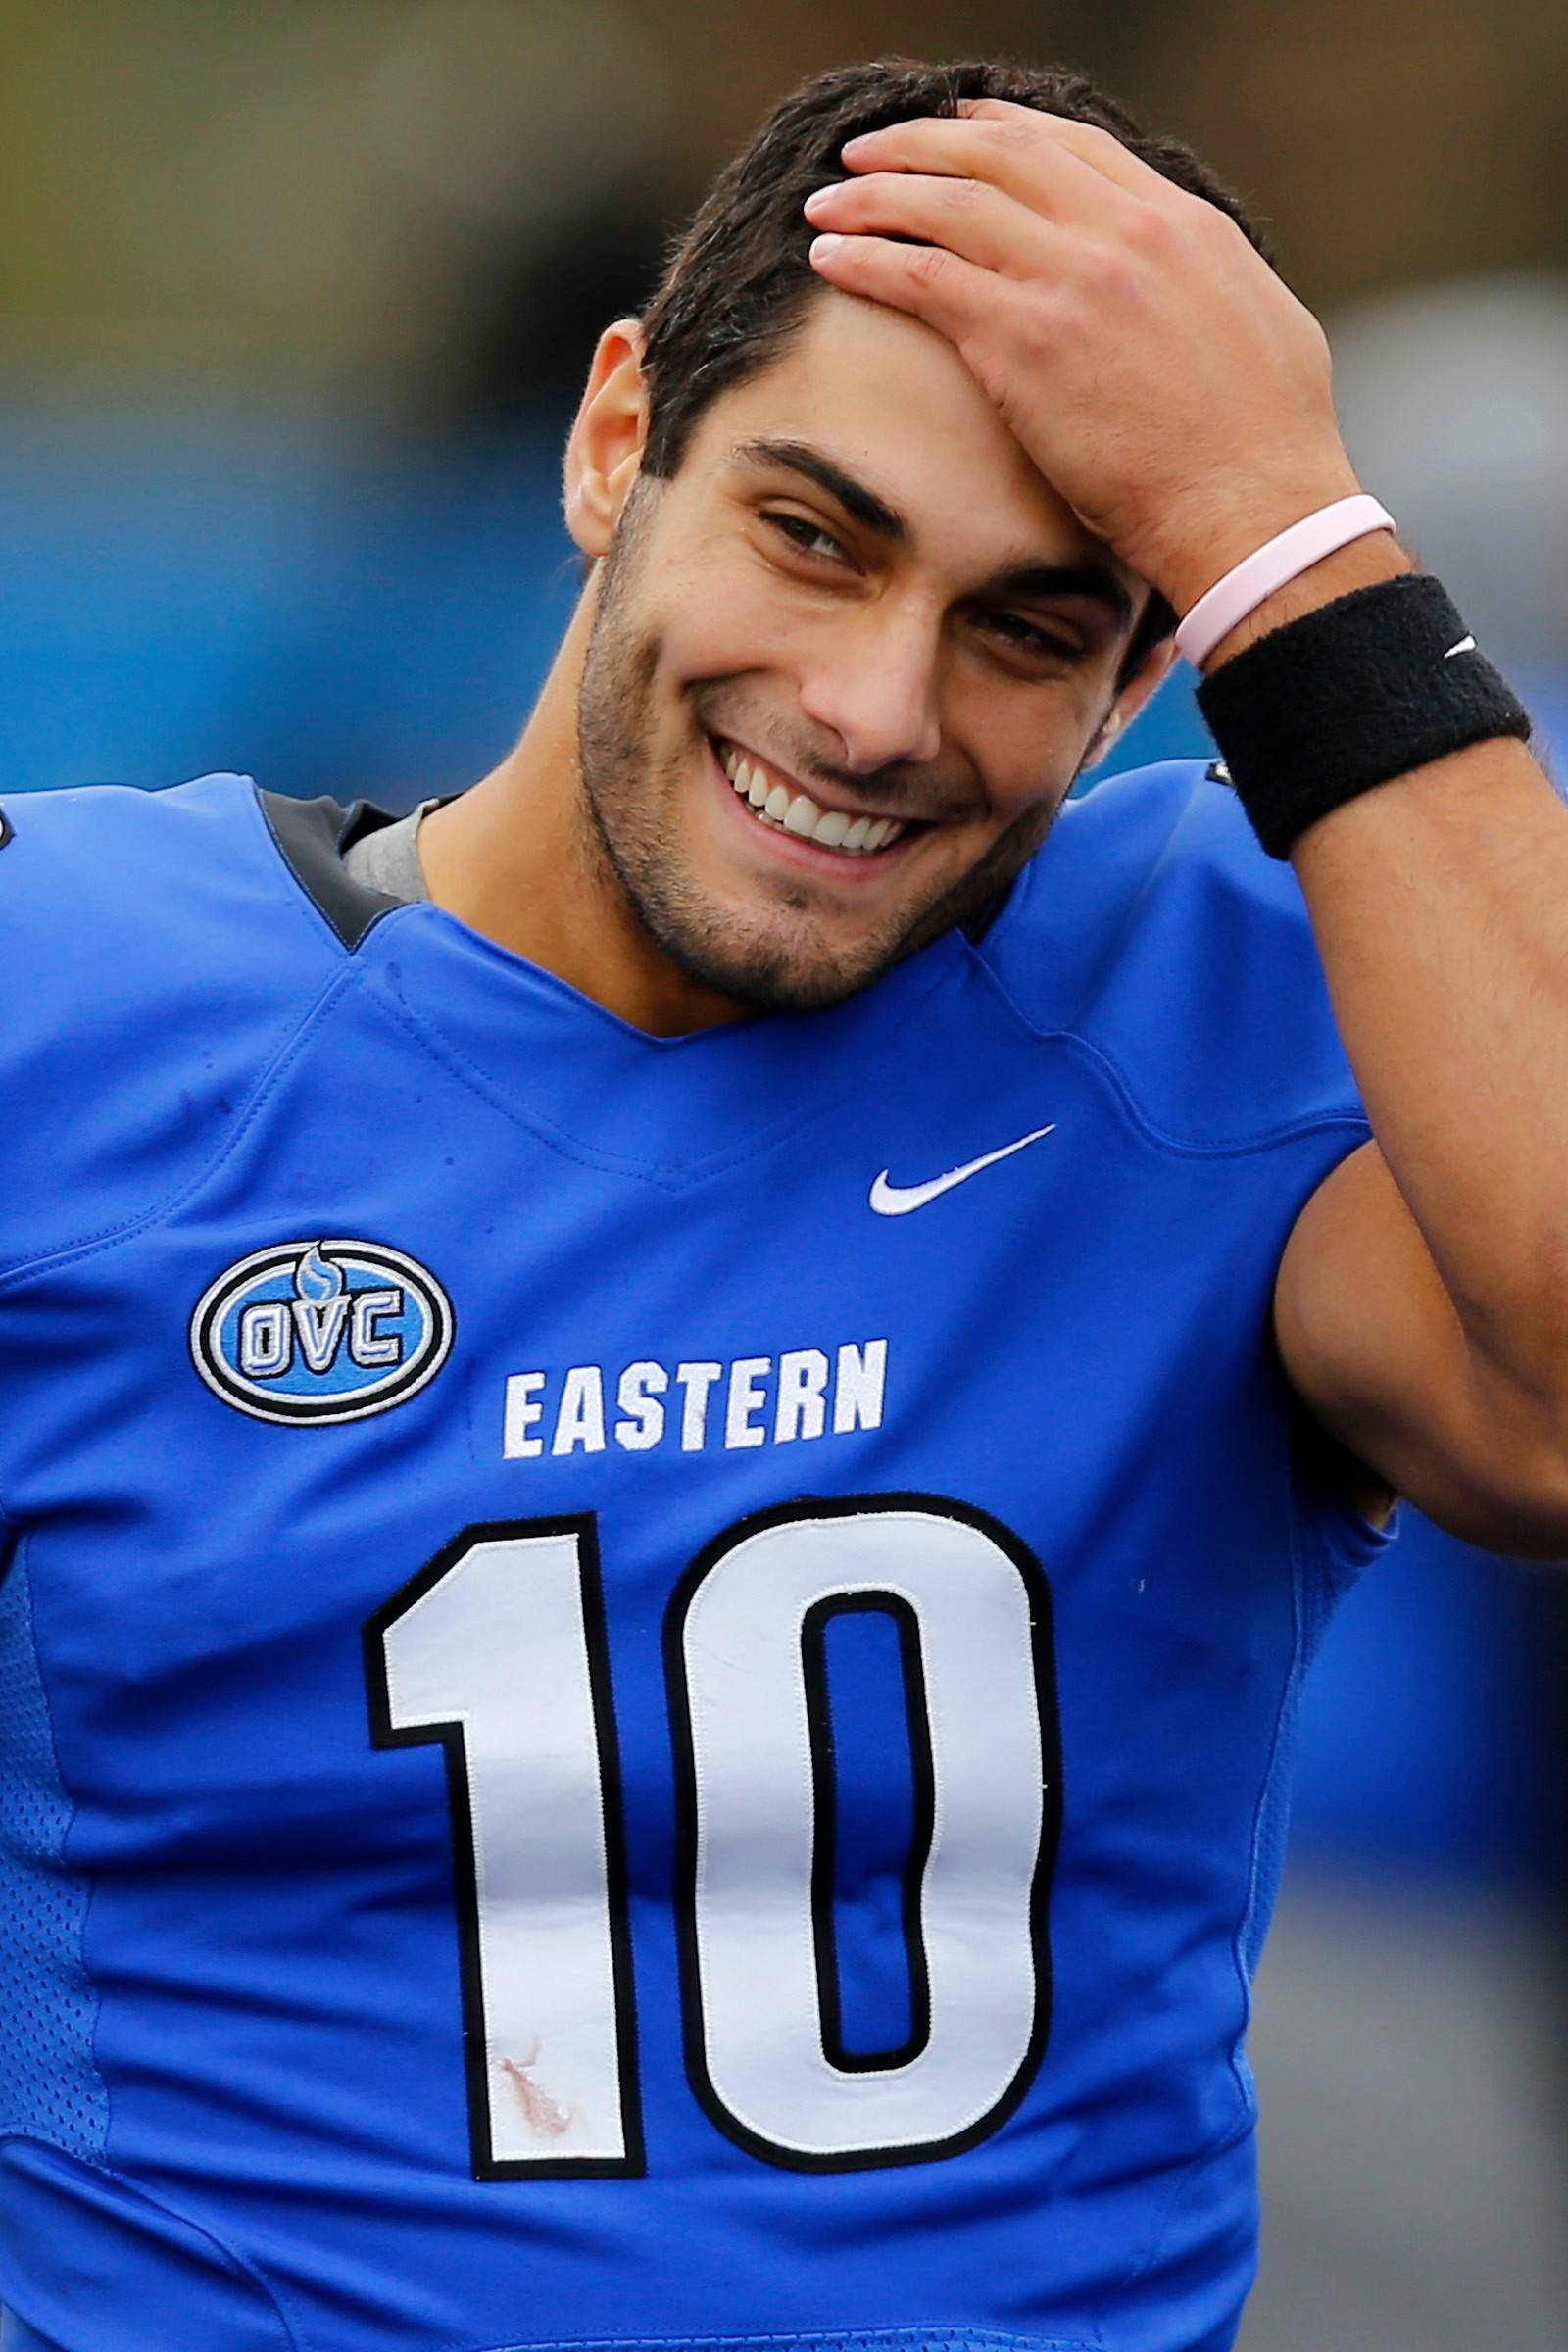 FILE - This Nov. 2, 2013 file photo shows Eastern Illinois quarterback Jimmy Garoppolo  on the sideline during the second half of an NCAA football game against Tennessee Tech at O'Brien Field in Charleston, Ill. Garoppolo and fellow Walter Payton Award finalist Terrance West of Towson have been selected to The Associated Press FCS All-America team, Wednesday, Dec. 18, 2013.